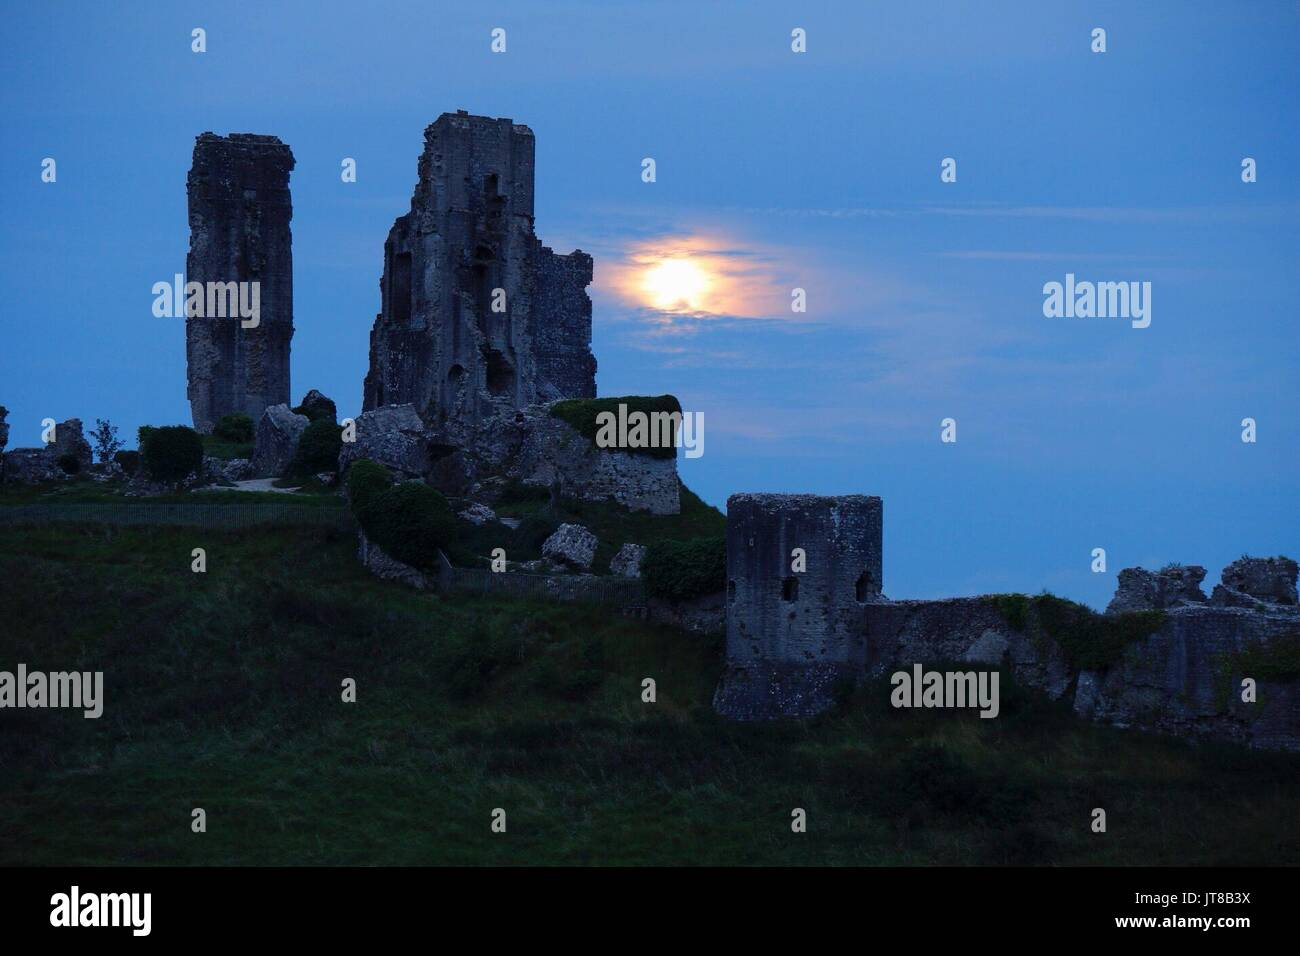 Corfe Castle, Dorset, 7th August 2017. This month sees a full moon appear in hazy conditions over the ancient ruined mount meant in Dorset. Sturgeons moon is so called as it was traditionally known as the easiest time of year to catch Sturgeon fish by night. Credit: Wayne Farrell/Alamy Live News - Stock Image